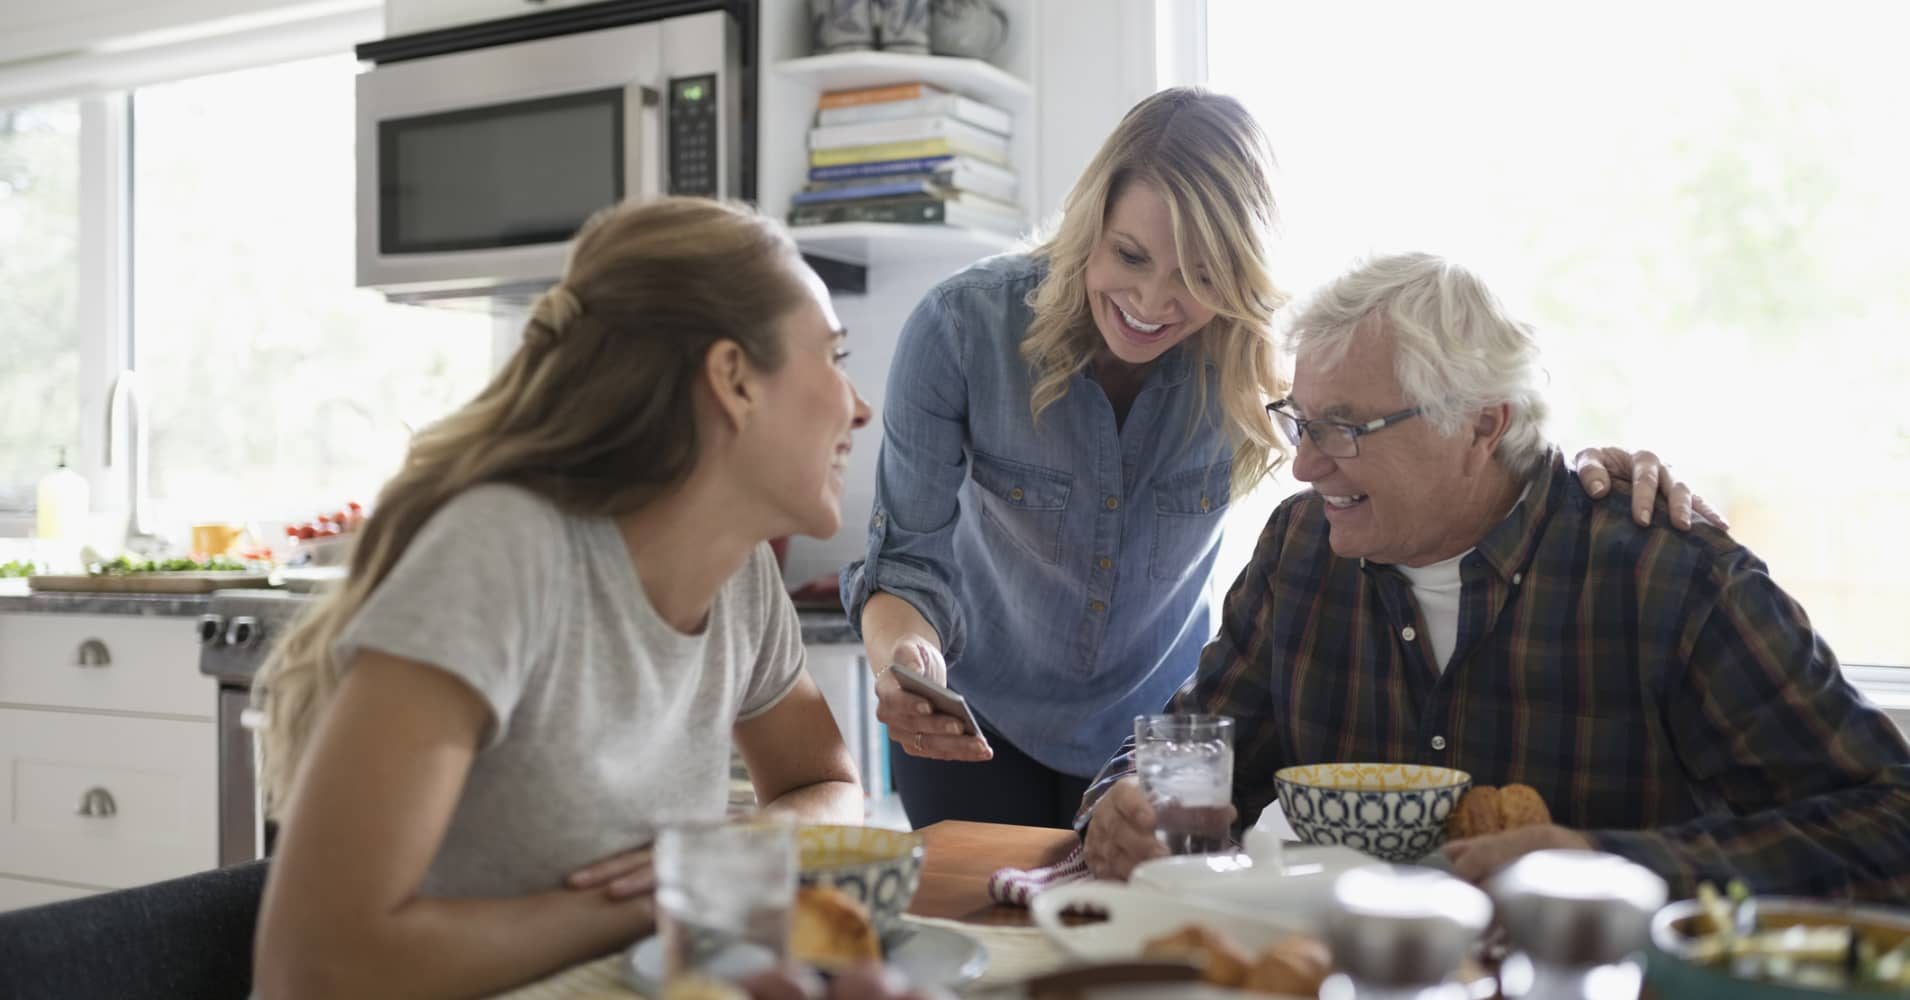 Smiling daughters and senior father using smart phone, eating at kitchen table